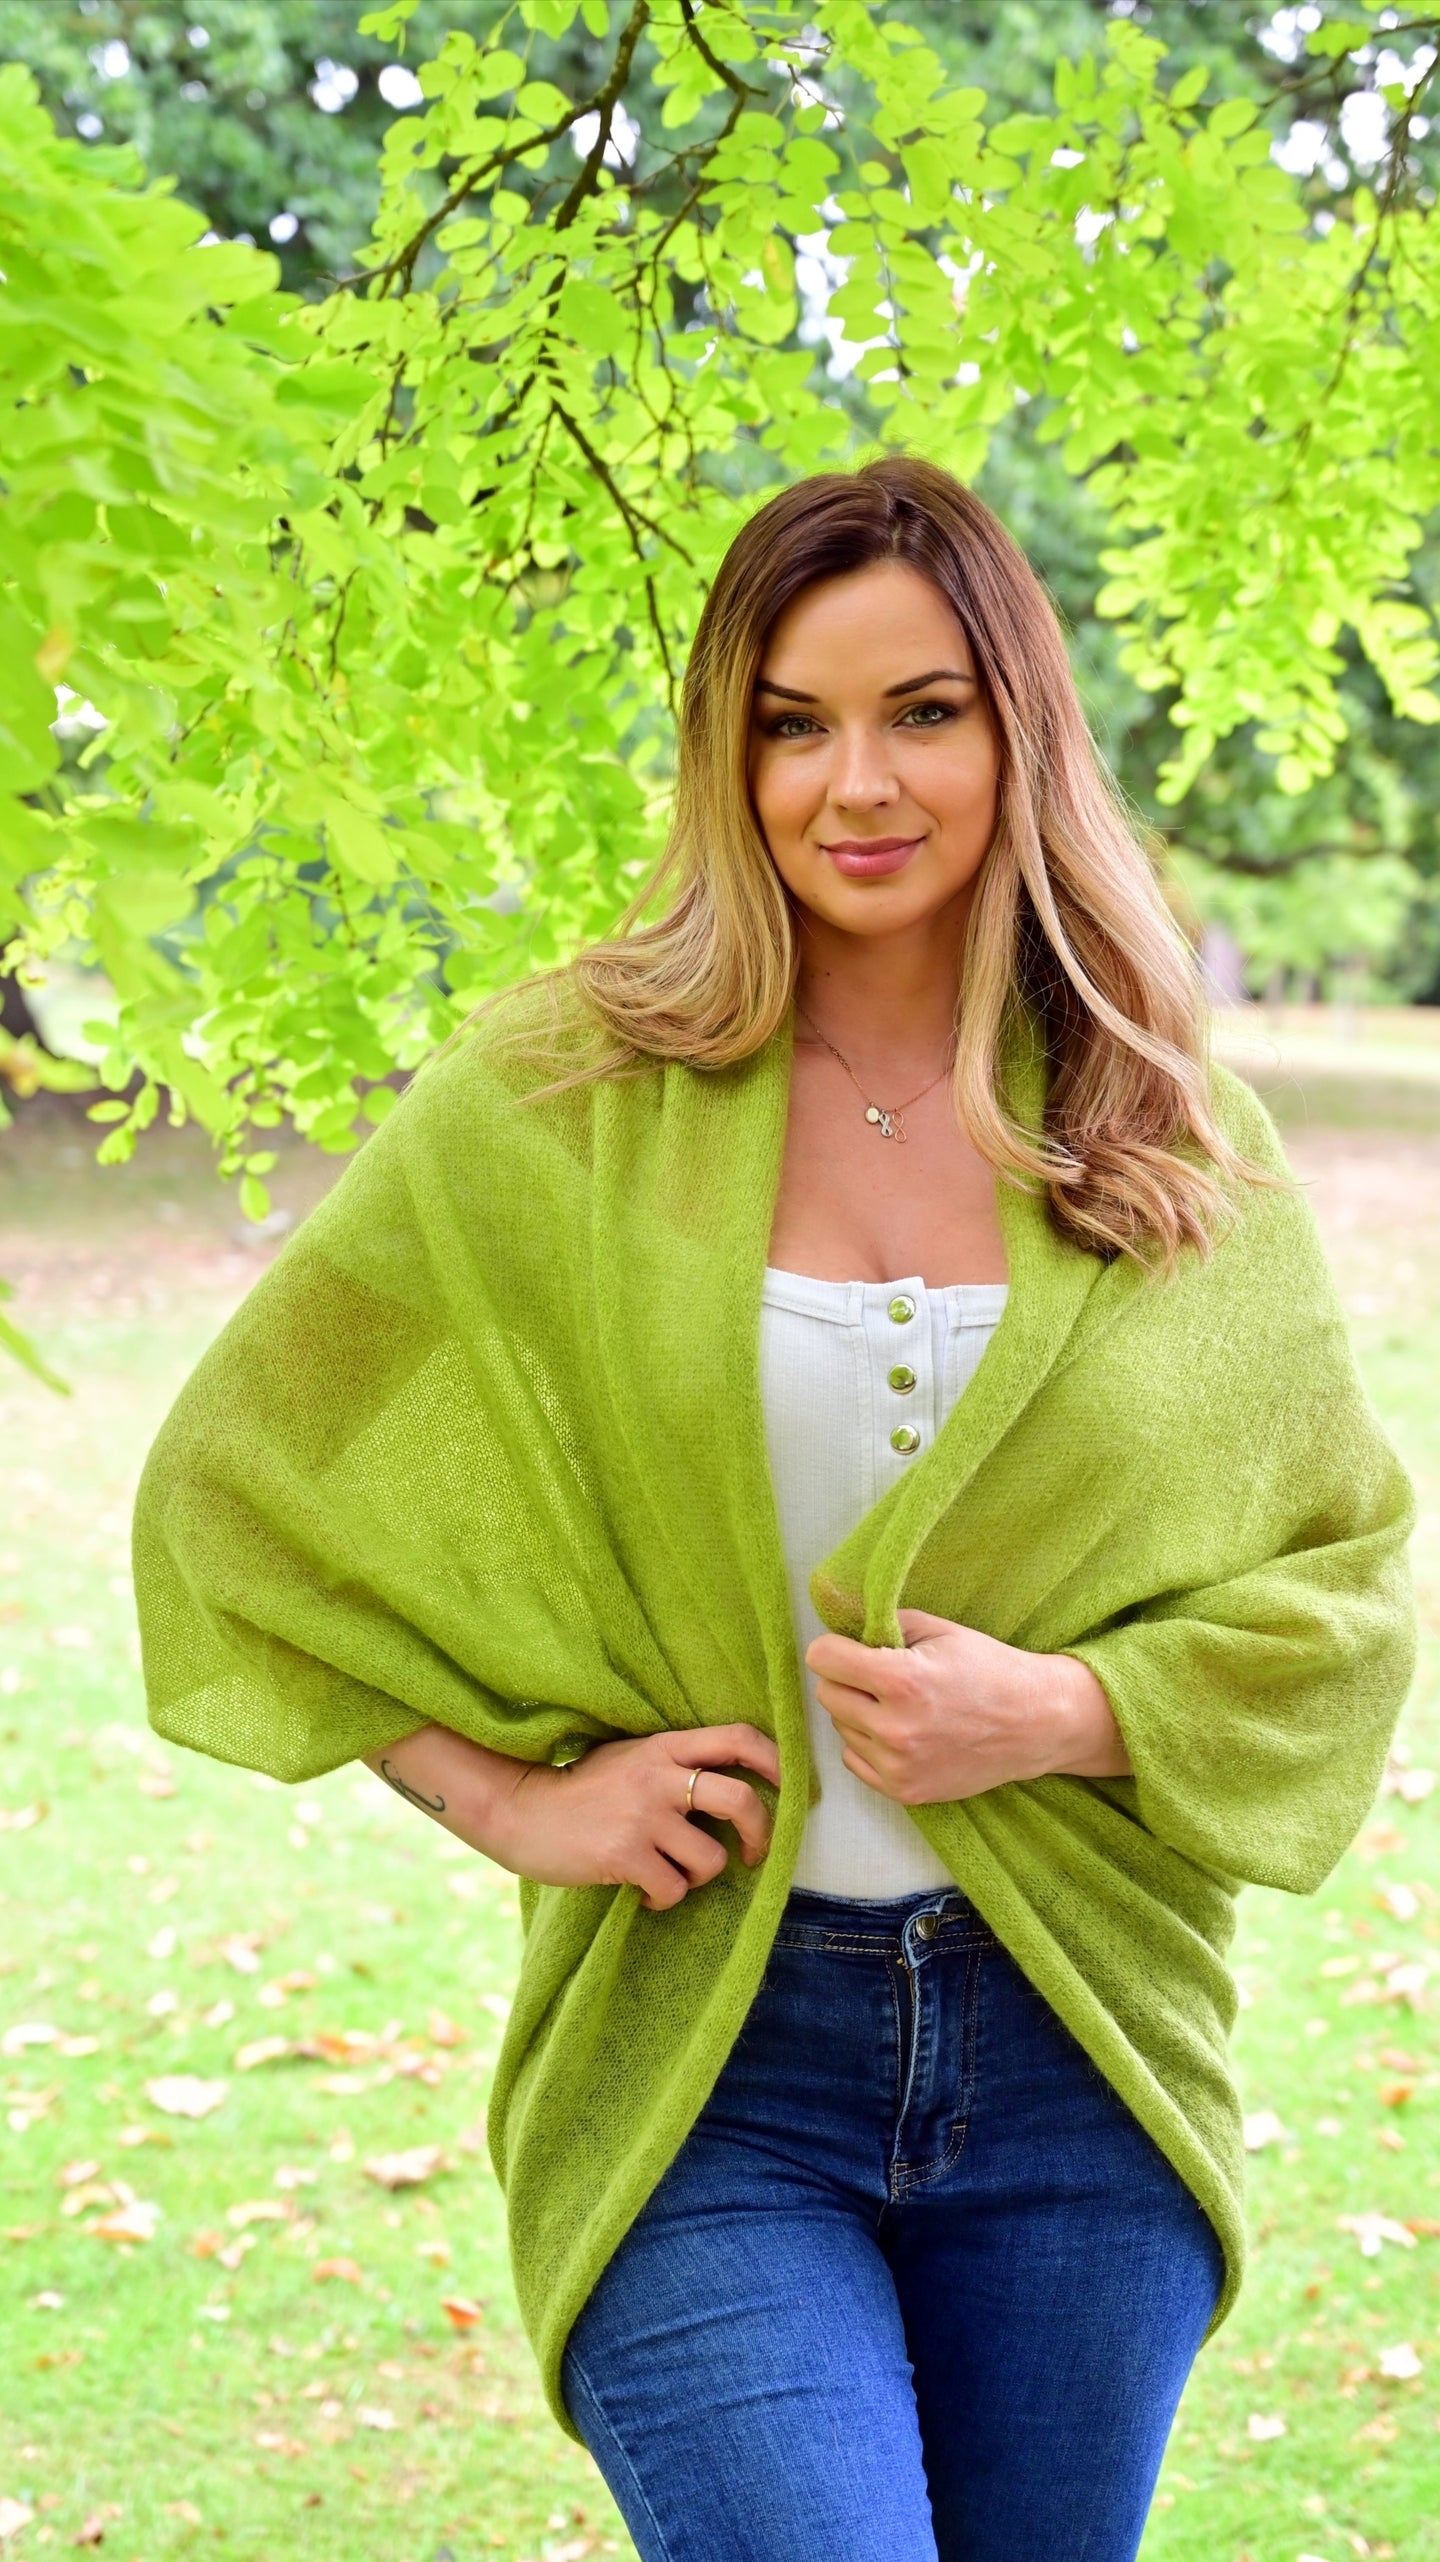 LL Cardigan | Versatile | Lightweight | in pear green